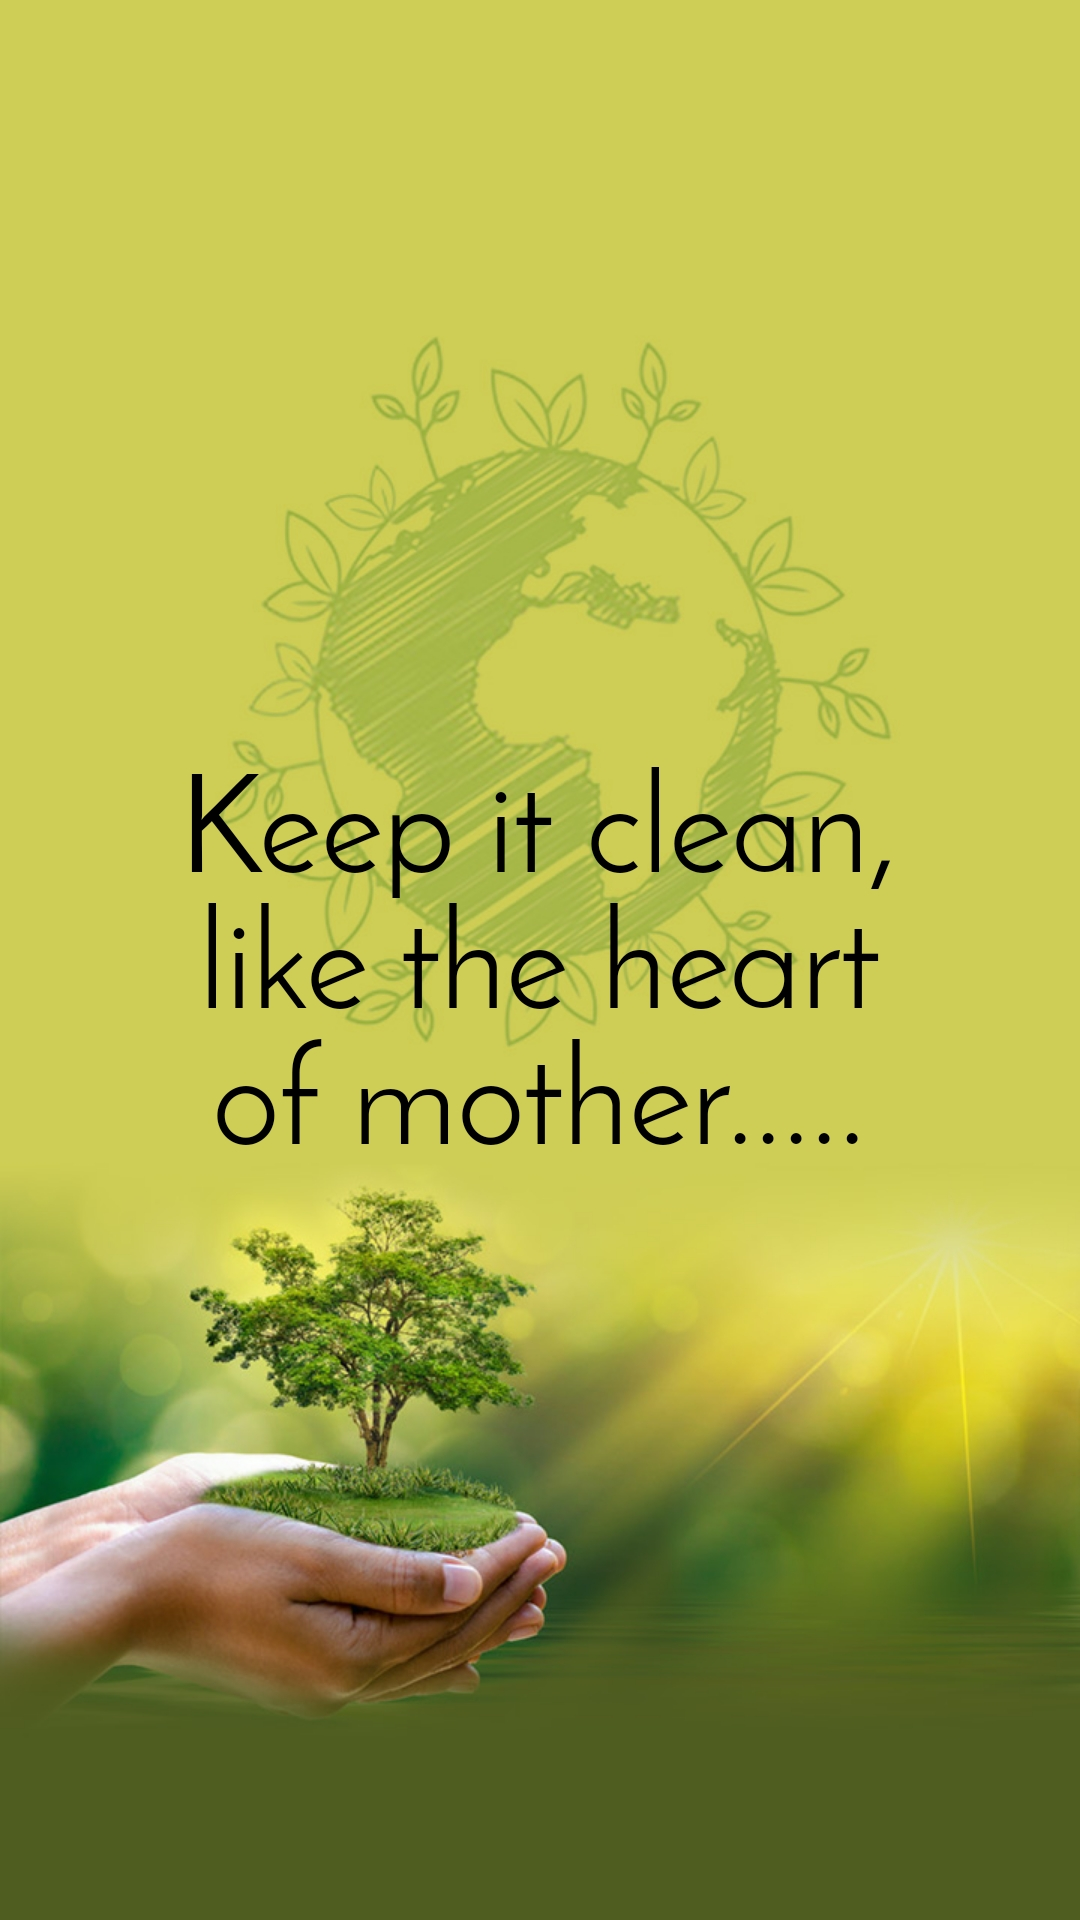 Keep it clean, like the heart of mother.....